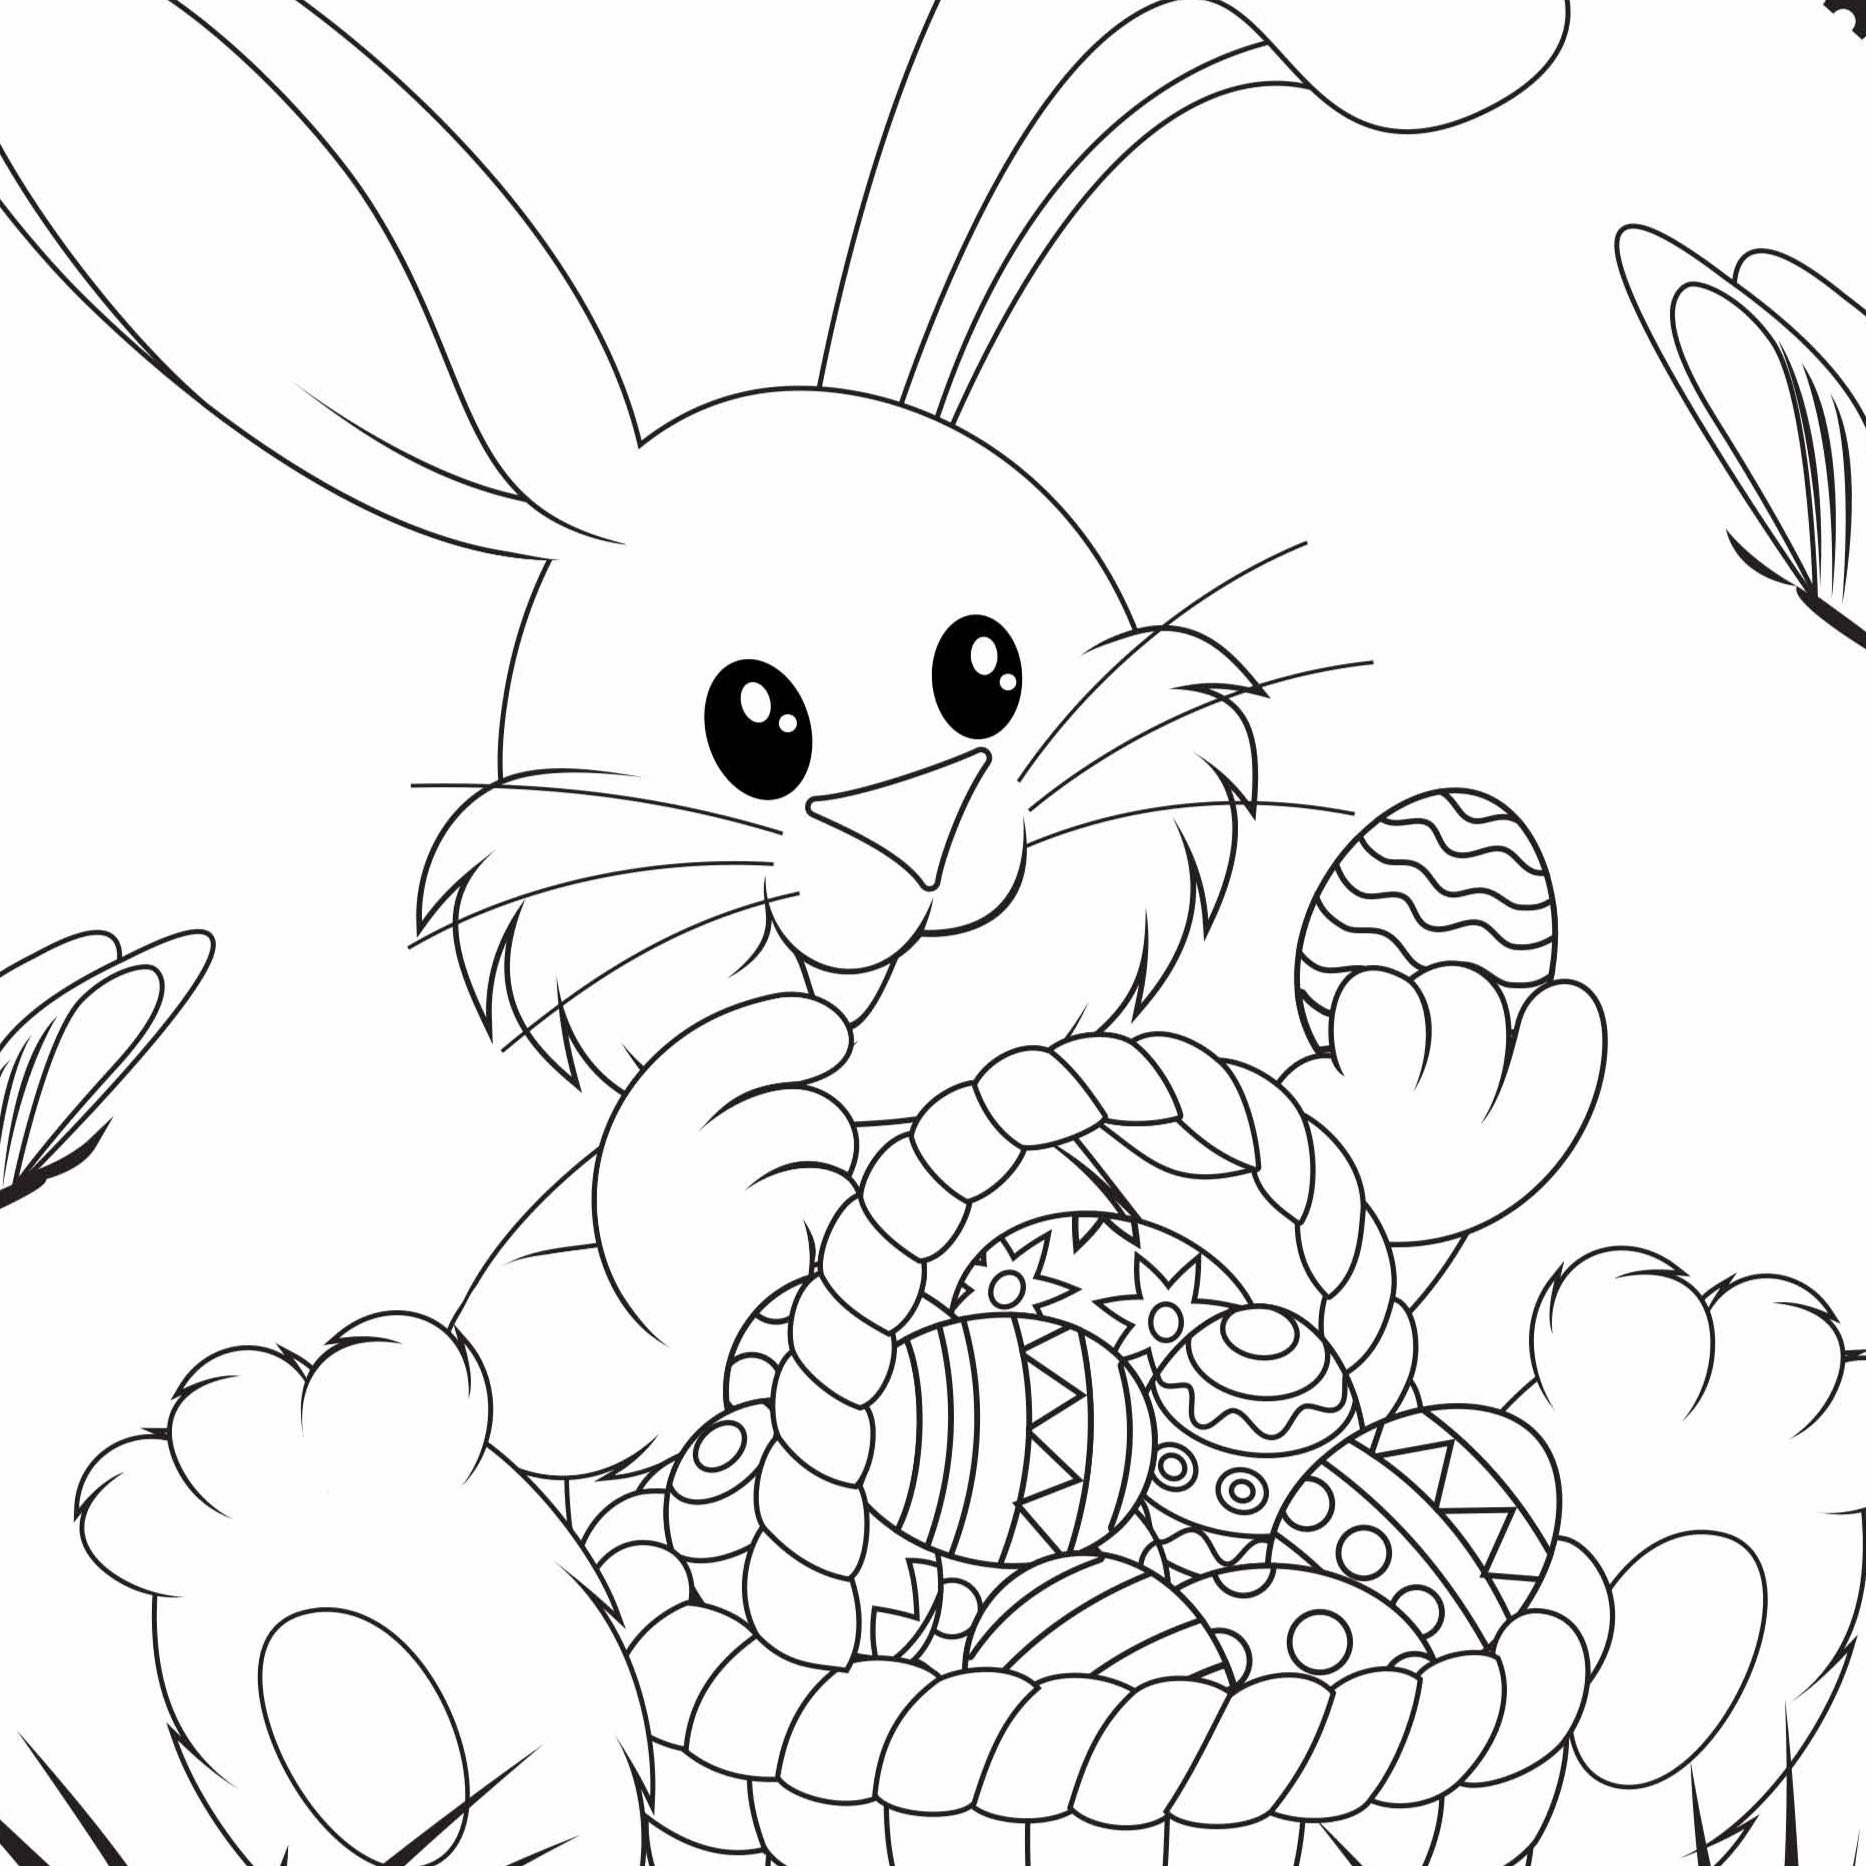 Discover Lowestofts Easter Colouring Competition! | News ...